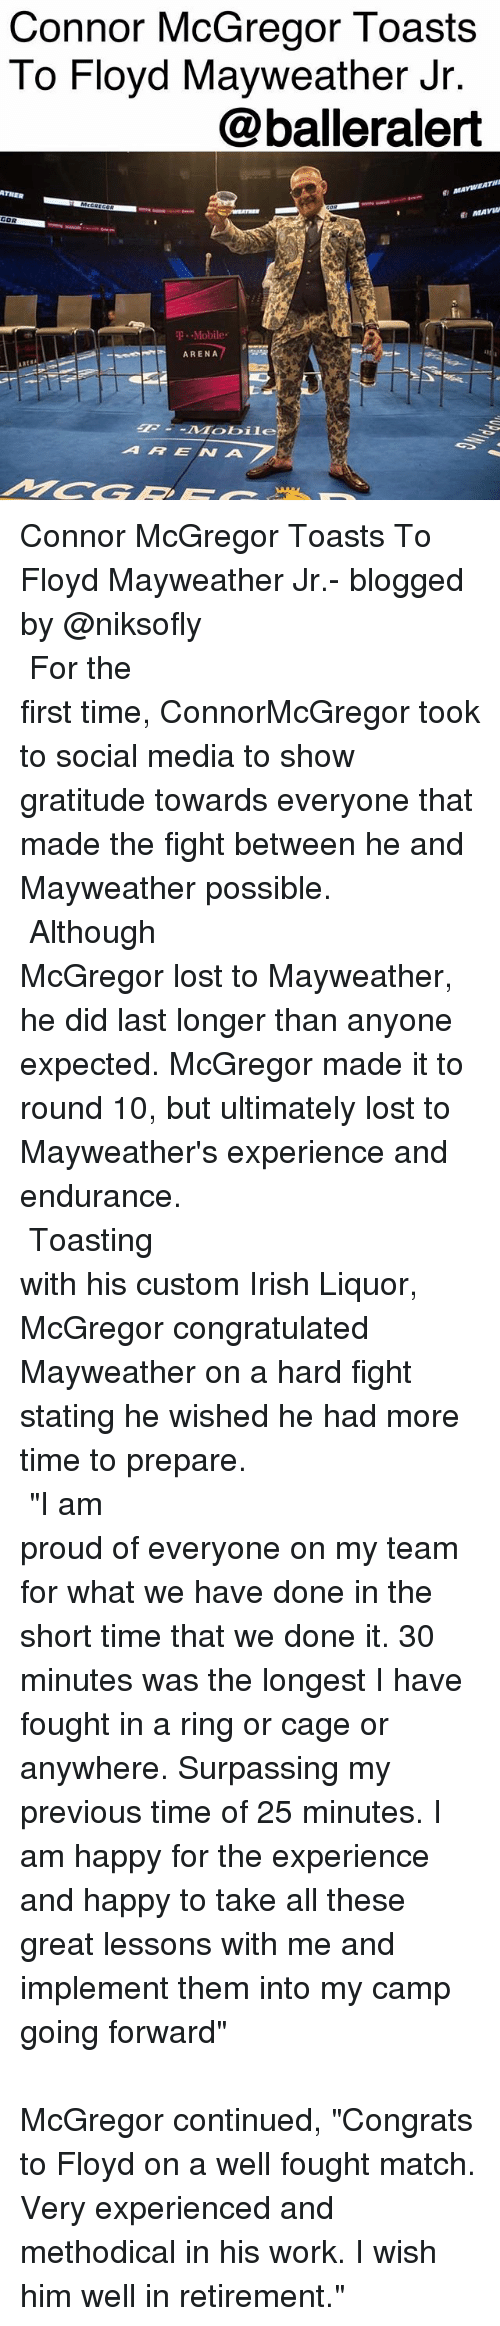 """Floyd Mayweather, Irish, and Mayweather: Connor McGregor Toasts  To Floyd Mayweather Jr  @balleralert  ATHER  T .-Mobile.  ARENA  ARENA Connor McGregor Toasts To Floyd Mayweather Jr.- blogged by @niksofly ⠀⠀⠀⠀⠀⠀⠀⠀⠀⠀⠀⠀⠀⠀⠀⠀⠀⠀⠀⠀⠀⠀⠀⠀⠀⠀⠀⠀⠀⠀⠀⠀⠀⠀⠀⠀ For the first time, ConnorMcGregor took to social media to show gratitude towards everyone that made the fight between he and Mayweather possible. ⠀⠀⠀⠀⠀⠀⠀⠀⠀⠀⠀⠀⠀⠀⠀⠀⠀⠀⠀⠀⠀⠀⠀⠀⠀⠀⠀⠀⠀⠀⠀⠀⠀⠀⠀⠀ Although McGregor lost to Mayweather, he did last longer than anyone expected. McGregor made it to round 10, but ultimately lost to Mayweather's experience and endurance. ⠀⠀⠀⠀⠀⠀⠀⠀⠀⠀⠀⠀⠀⠀⠀⠀⠀⠀⠀⠀⠀⠀⠀⠀⠀⠀⠀⠀⠀⠀⠀⠀⠀⠀⠀⠀ Toasting with his custom Irish Liquor, McGregor congratulated Mayweather on a hard fight stating he wished he had more time to prepare. ⠀⠀⠀⠀⠀⠀⠀⠀⠀⠀⠀⠀⠀⠀⠀⠀⠀⠀⠀⠀⠀⠀⠀⠀⠀⠀⠀⠀⠀⠀⠀⠀⠀⠀⠀⠀ """"I am proud of everyone on my team for what we have done in the short time that we done it. 30 minutes was the longest I have fought in a ring or cage or anywhere. Surpassing my previous time of 25 minutes. I am happy for the experience and happy to take all these great lessons with me and implement them into my camp going forward"""" ⠀⠀⠀⠀⠀⠀⠀⠀⠀⠀⠀⠀⠀⠀⠀⠀⠀⠀⠀⠀⠀⠀⠀⠀⠀⠀⠀⠀⠀⠀⠀⠀⠀⠀⠀⠀ McGregor continued, """"Congrats to Floyd on a well fought match. Very experienced and methodical in his work. I wish him well in retirement."""""""